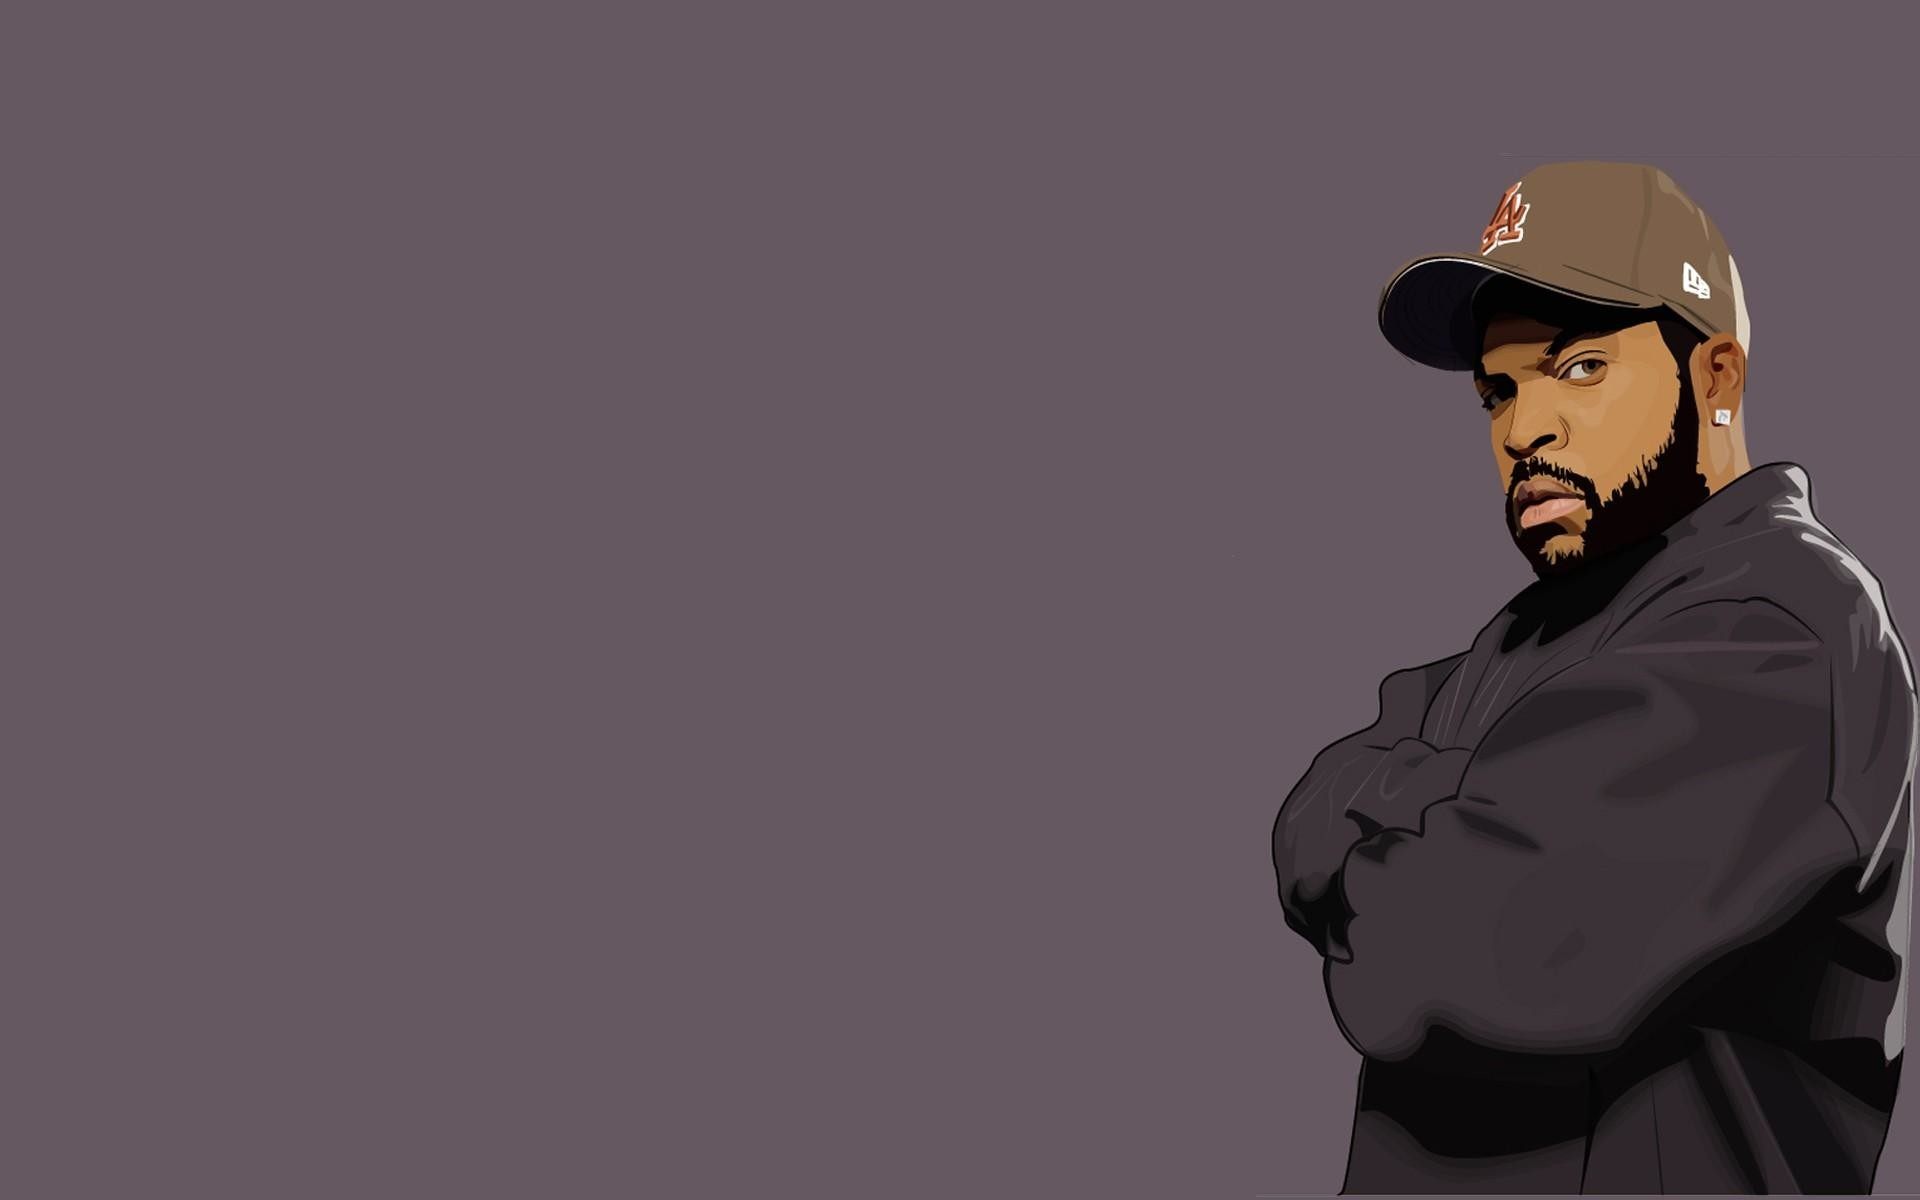 Ice Cube Rap Wallpaper.